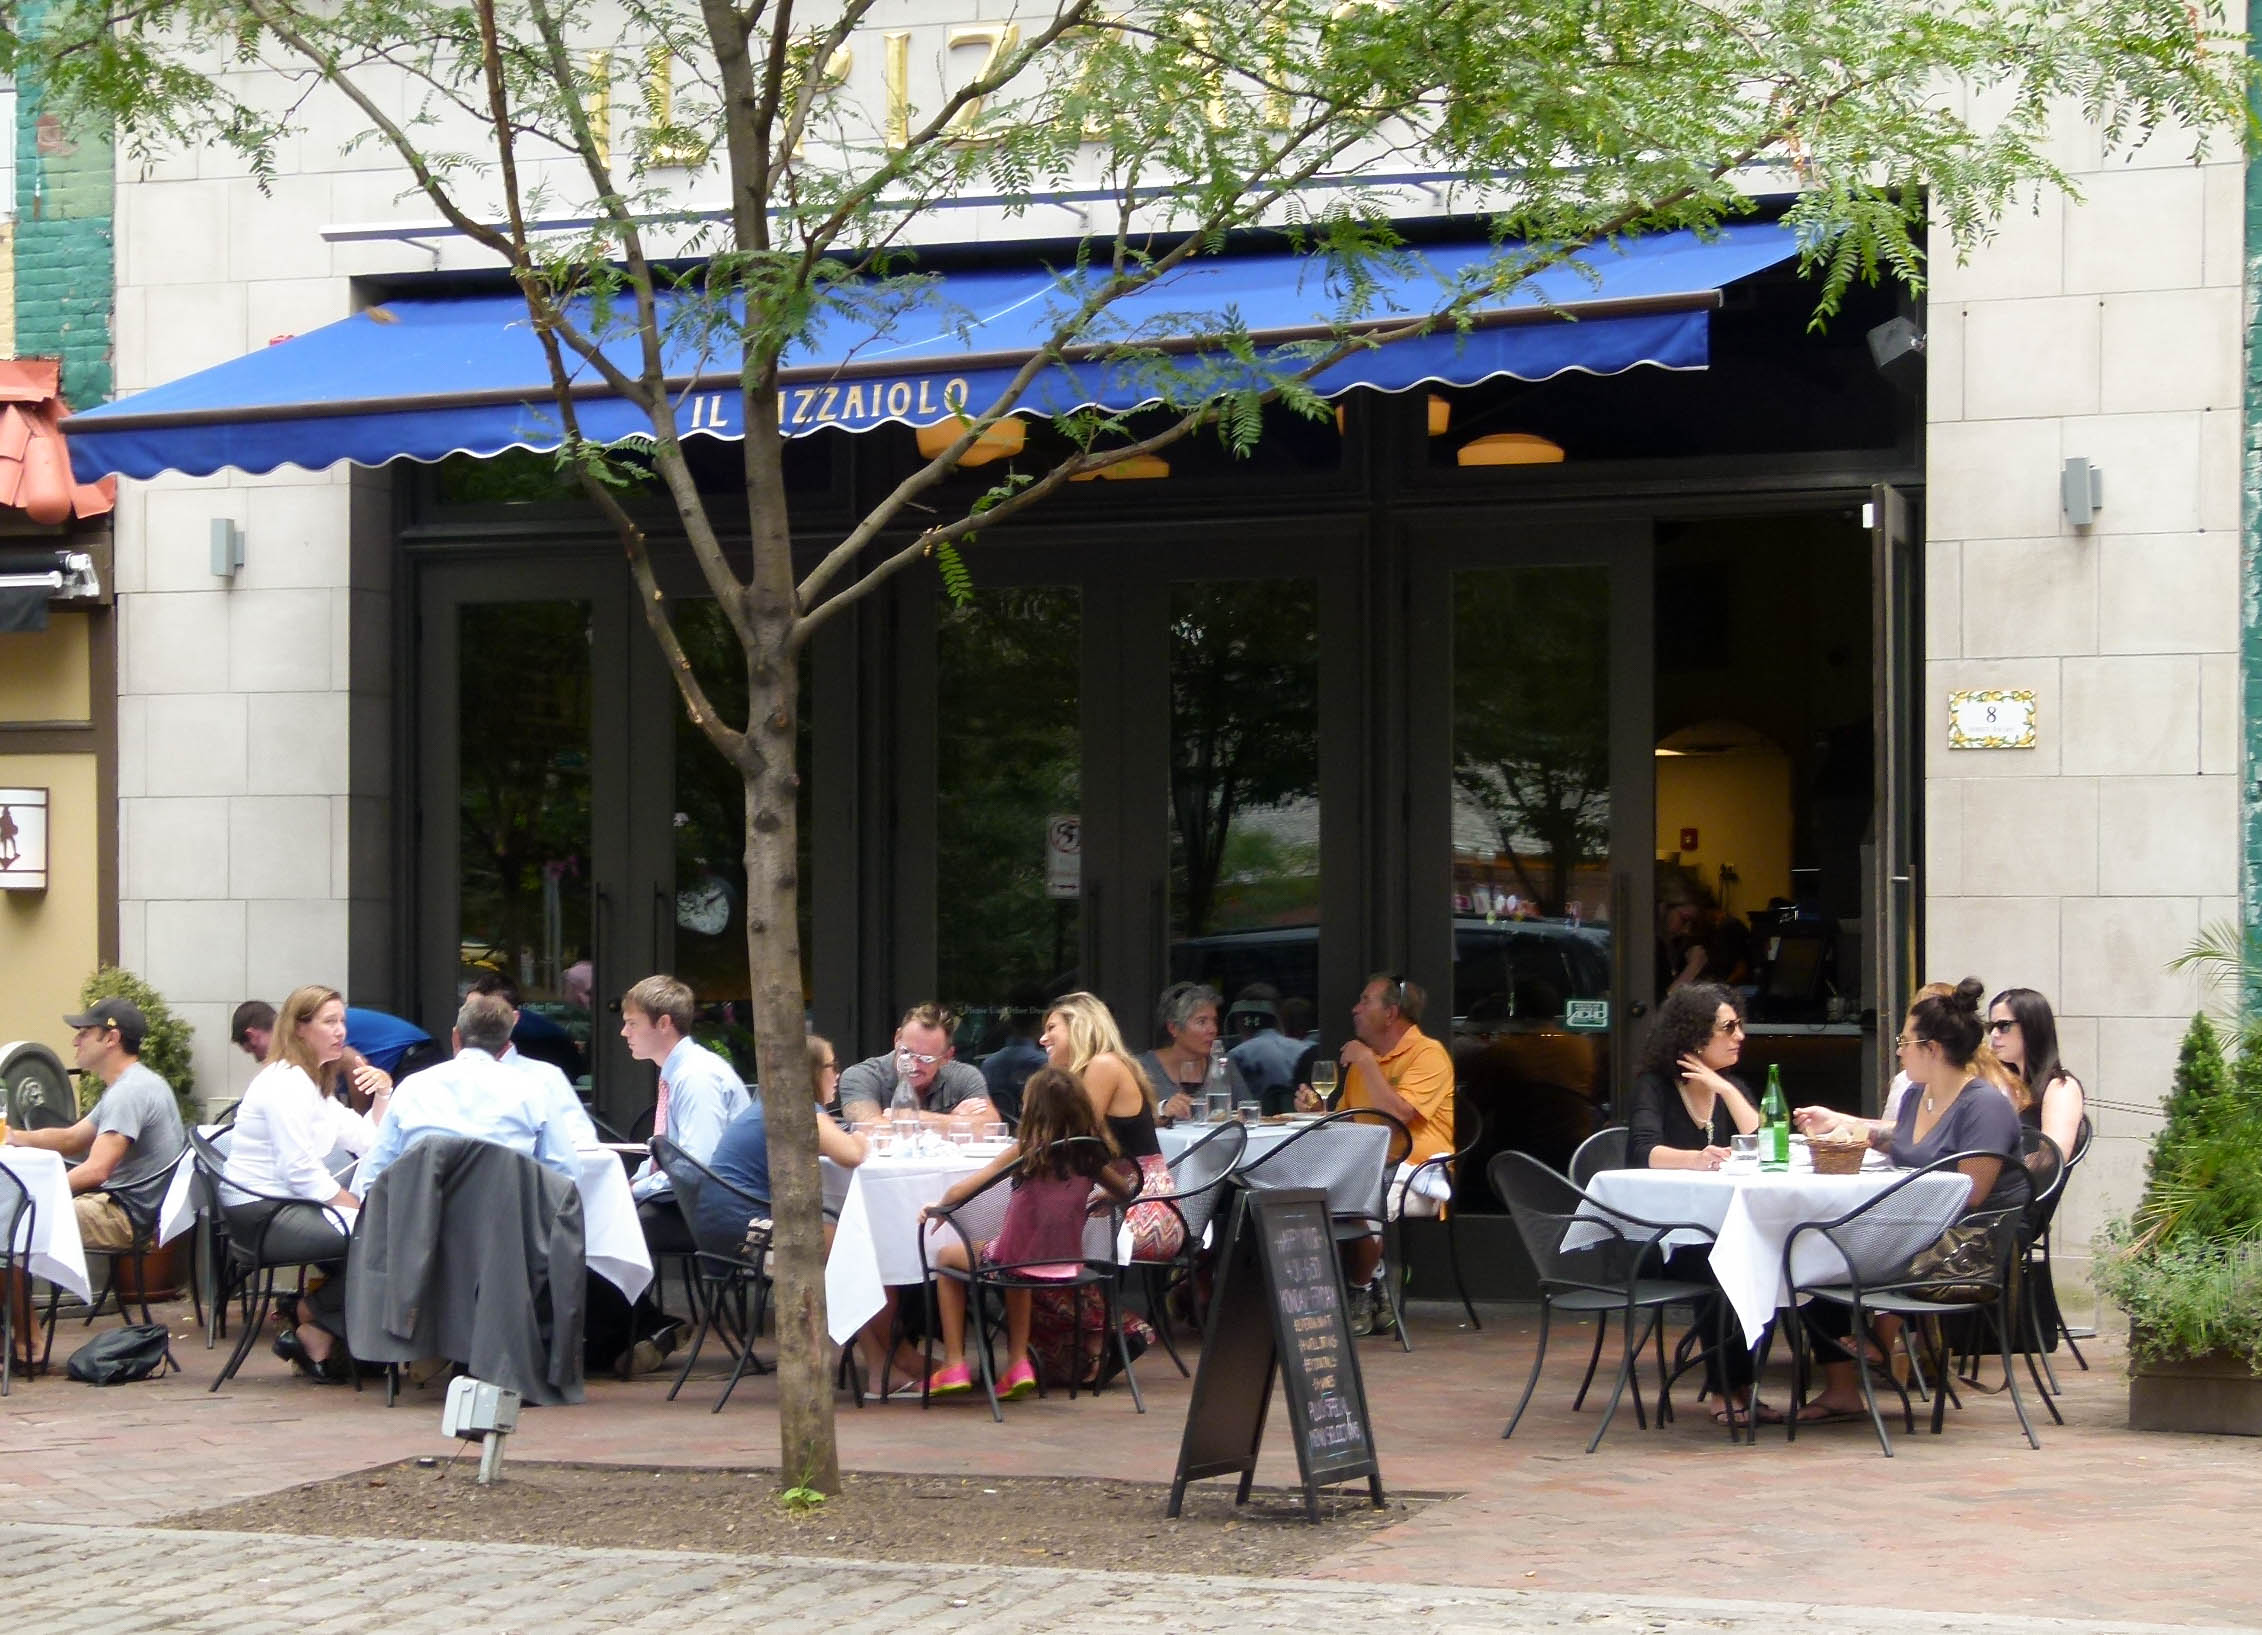 Outdoor seating makes Il Pizzaiolo a superb spot for a casual business meeting or just some people-watching in Market Square.